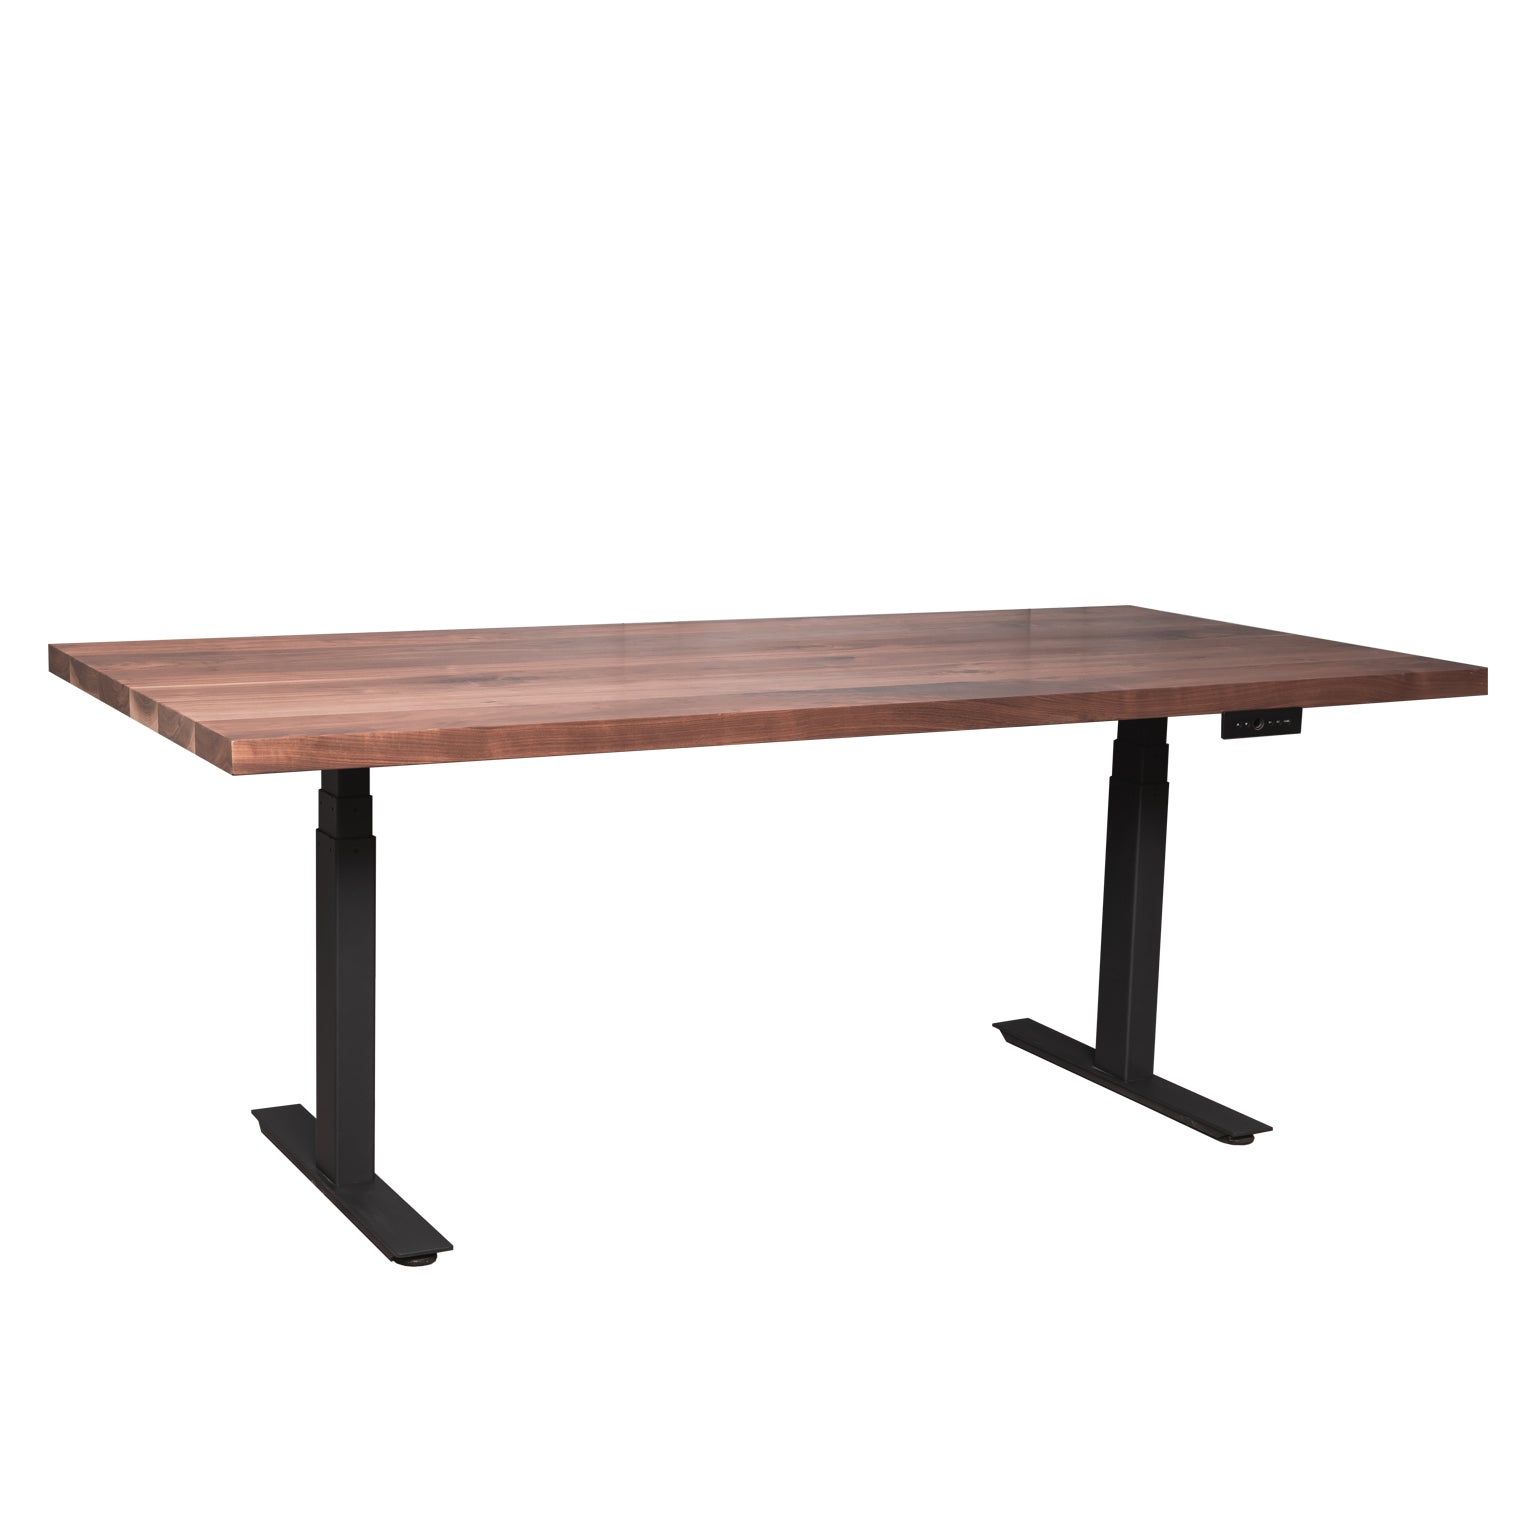 """Custom Sit/Stand """"Essentials Desk"""" with Solid Wood Top and Metal Base, Large"""